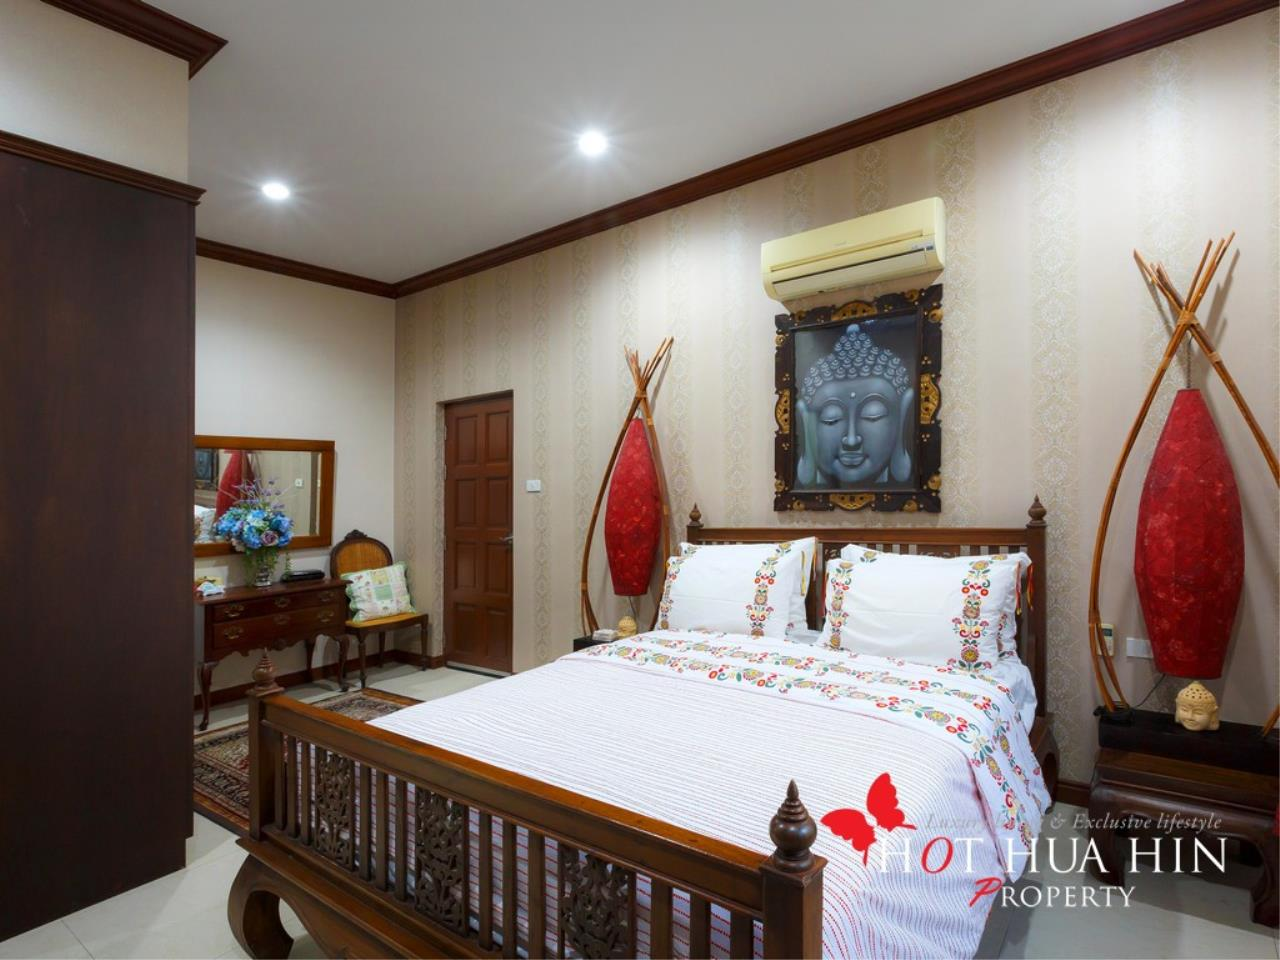 Hot Hua Hin Co. Ltd. Agency's Well Built Home With Stunning Gardens And Two Full Kitchens 15